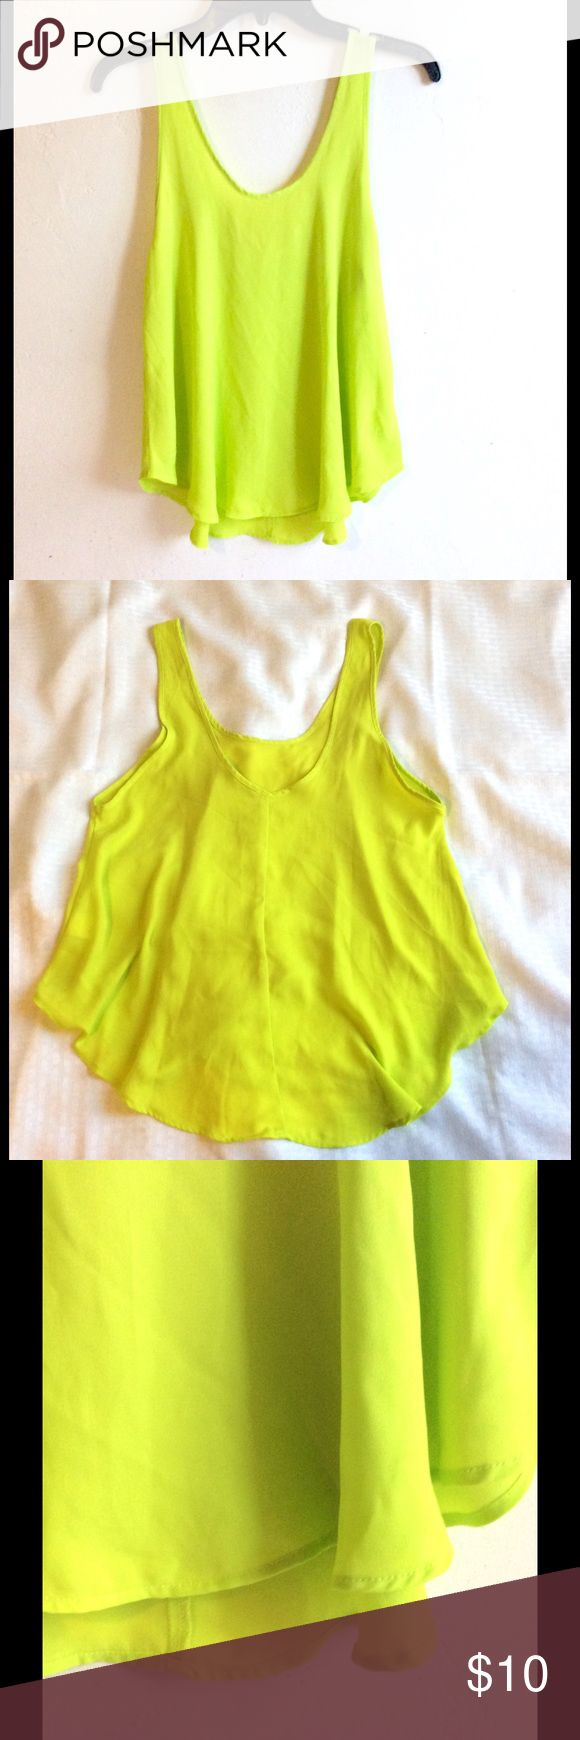 """LUSH Lime Green Floaty Circle Cut Poly Tank Top LUSH, Size Medium, Lime Green polyester Tank Top, wide circle cut for a Floaty look, perfect over shorts and jeans. Measures 17"""" armpit to armpit, 24"""" at longest Point. Coachella is soon, get your wardrobe started! LUSH Tops Tank Tops"""